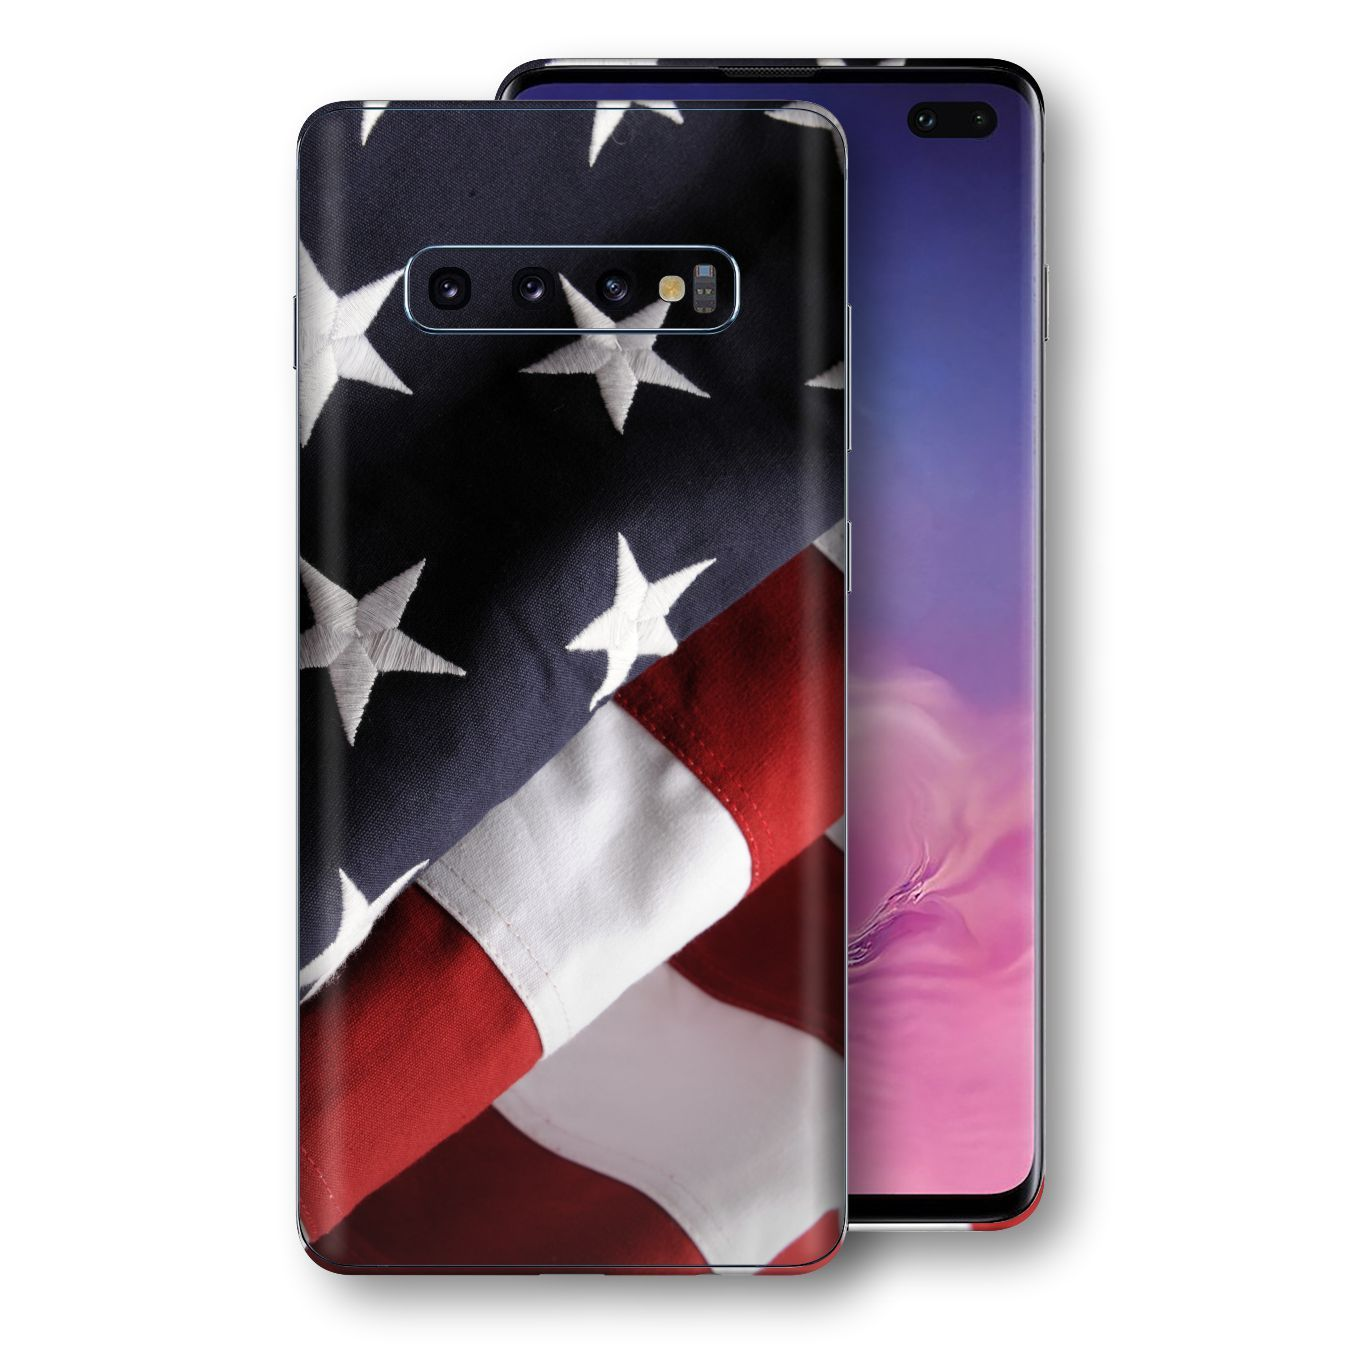 Samsung Galaxy S10+ PLUS Print Custom Signature USA United States Of America Flag Skin Wrap Decal by EasySkinz - Design 2